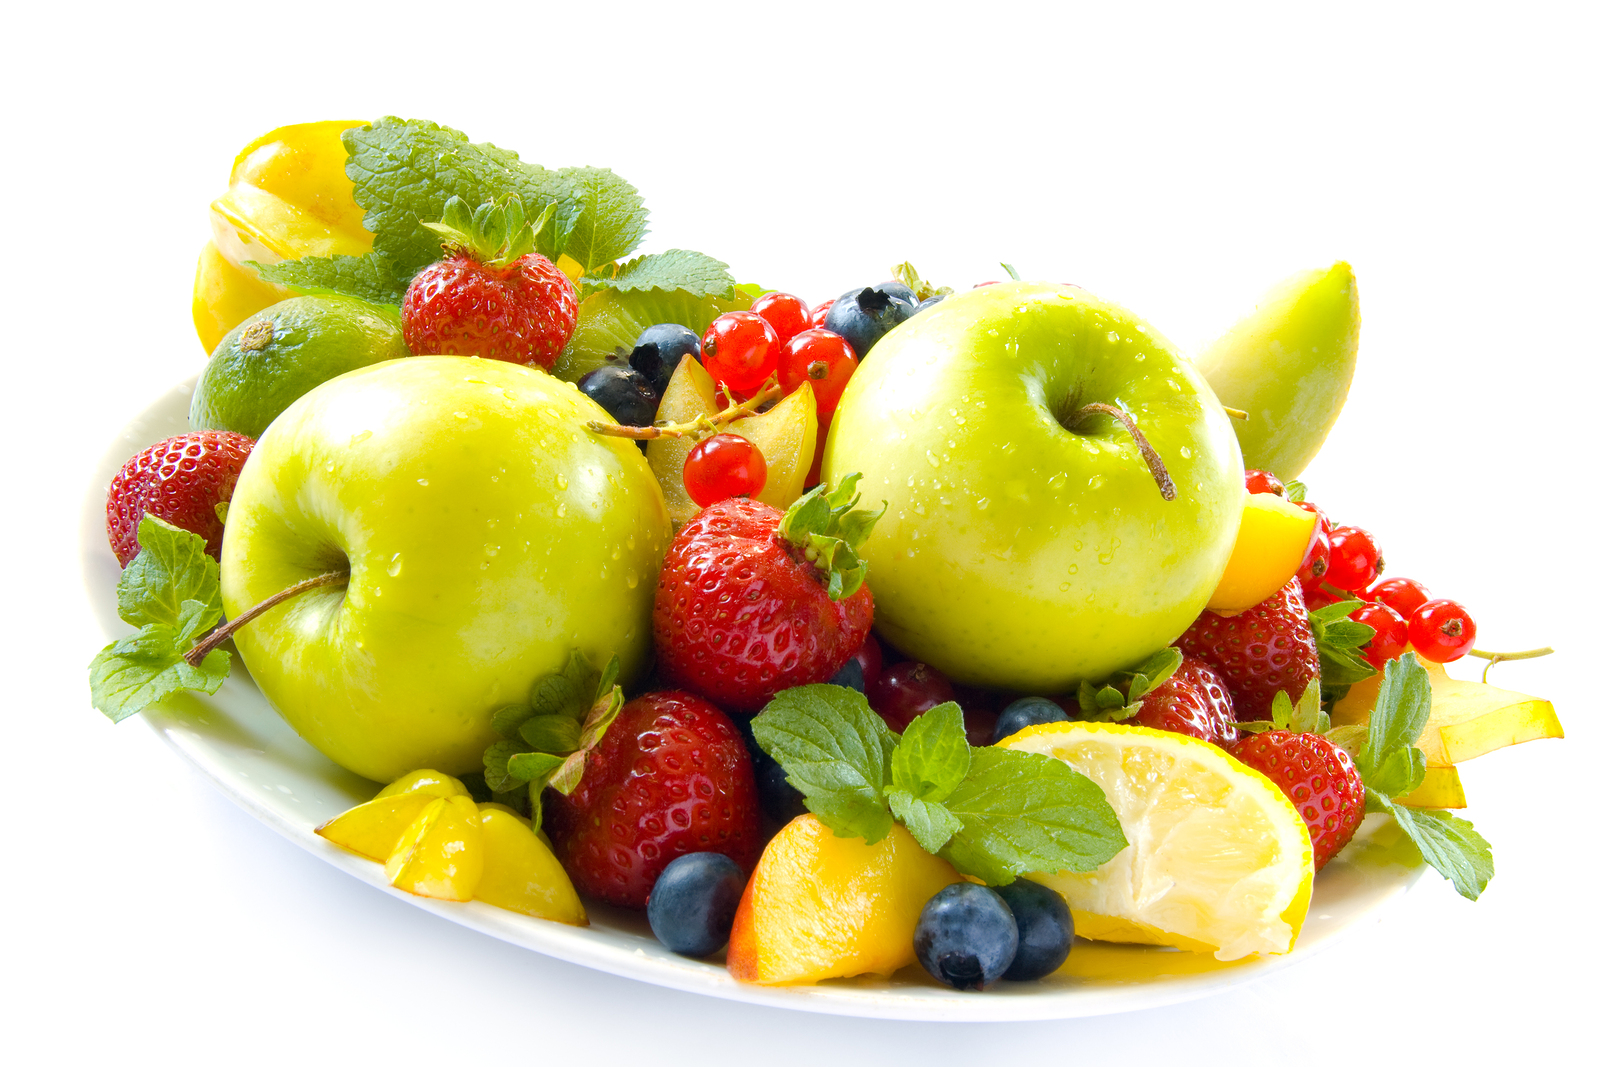 Colorful Fruit Bowl Ben Brown Nutrition Archives Bsl Nutrition